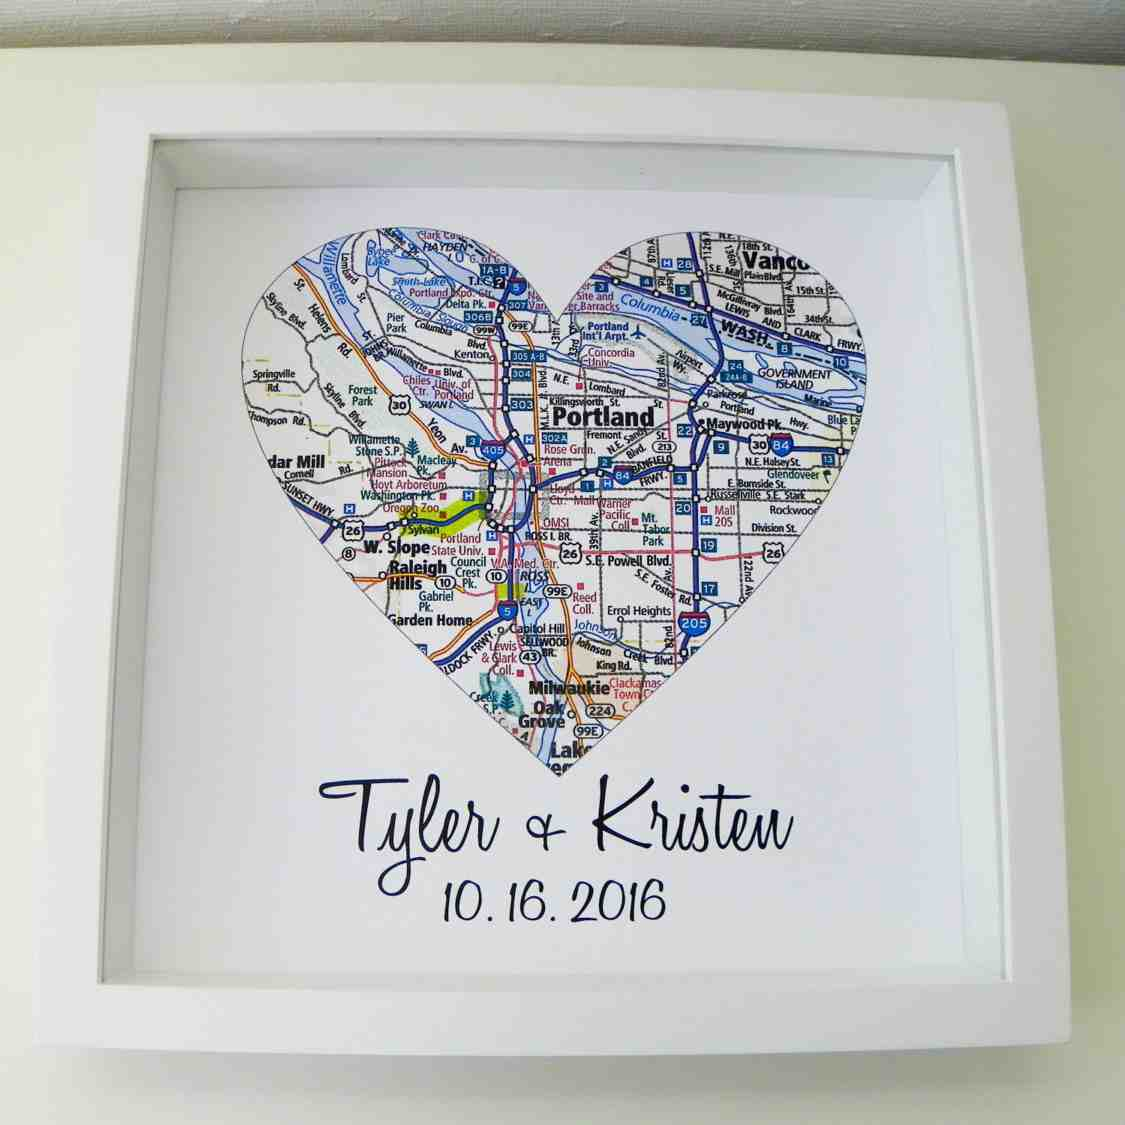 Personalised Wedding Gift Bride : Personalized Wedding Gift Ideas For Bride And GroomWedding and ...